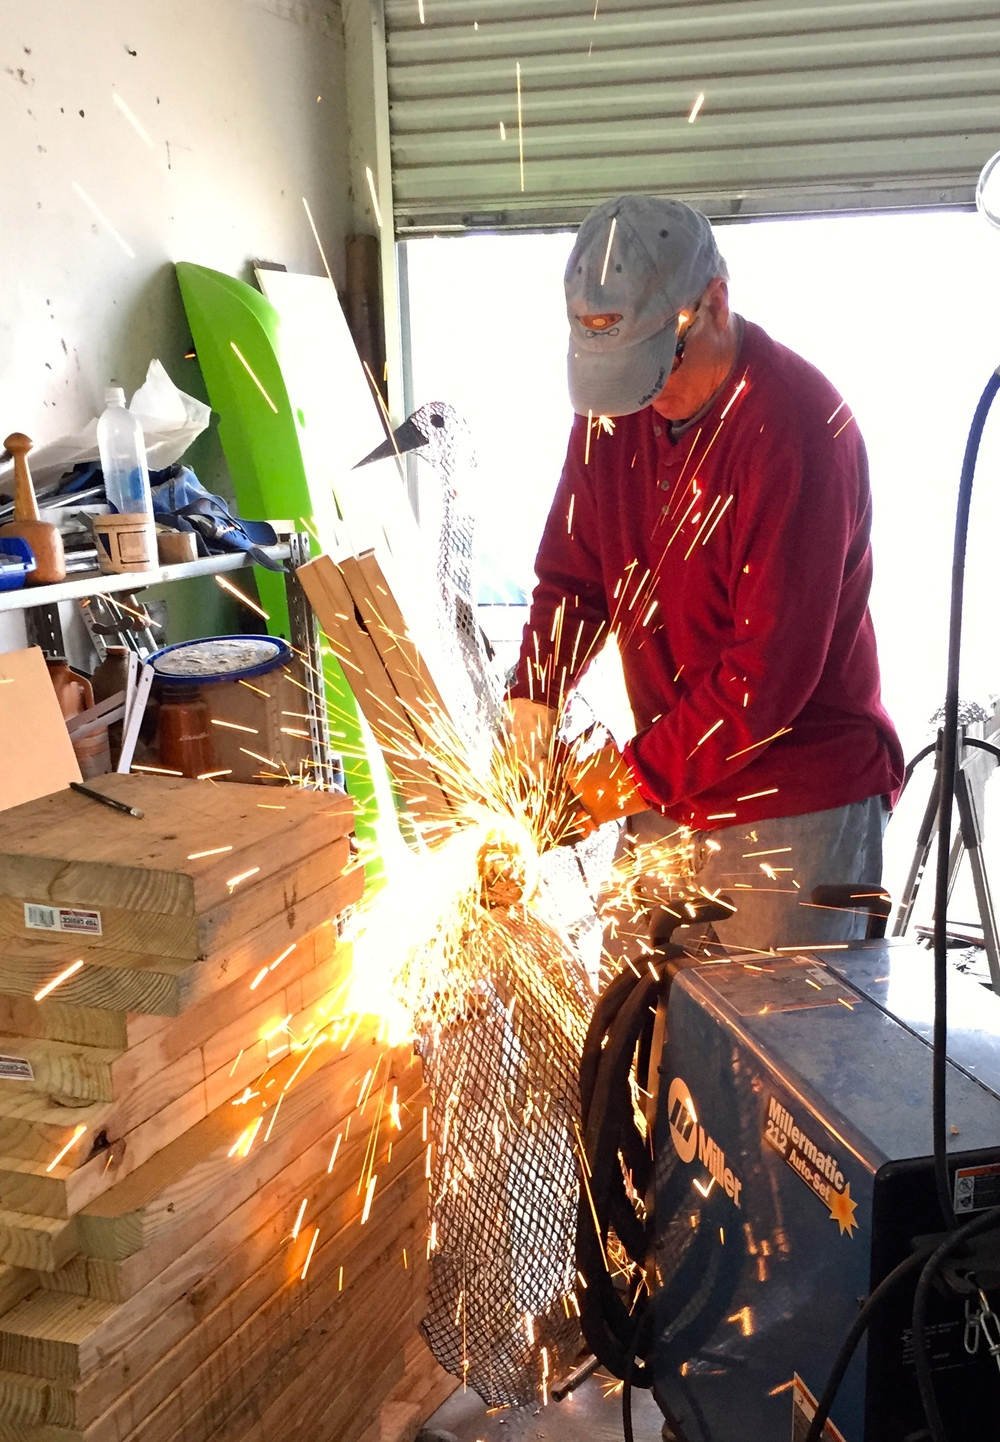 Jim swaim cuts the metal for a sculpture he is making